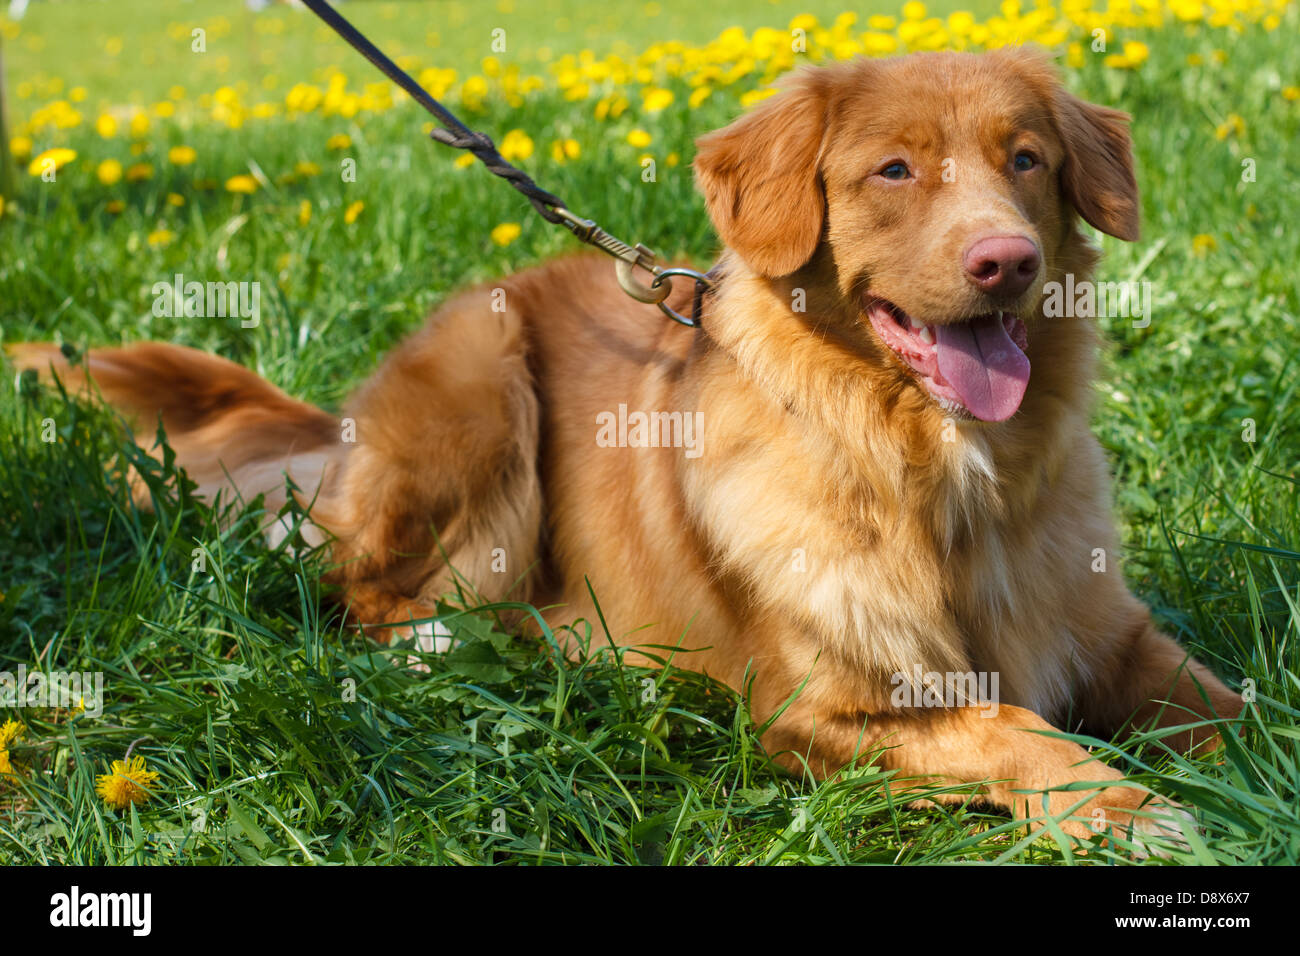 smiling red gun dog breed Nova Scotia Duck Tolling Retriever (Toller) lying on a green lawn blooming - Stock Image